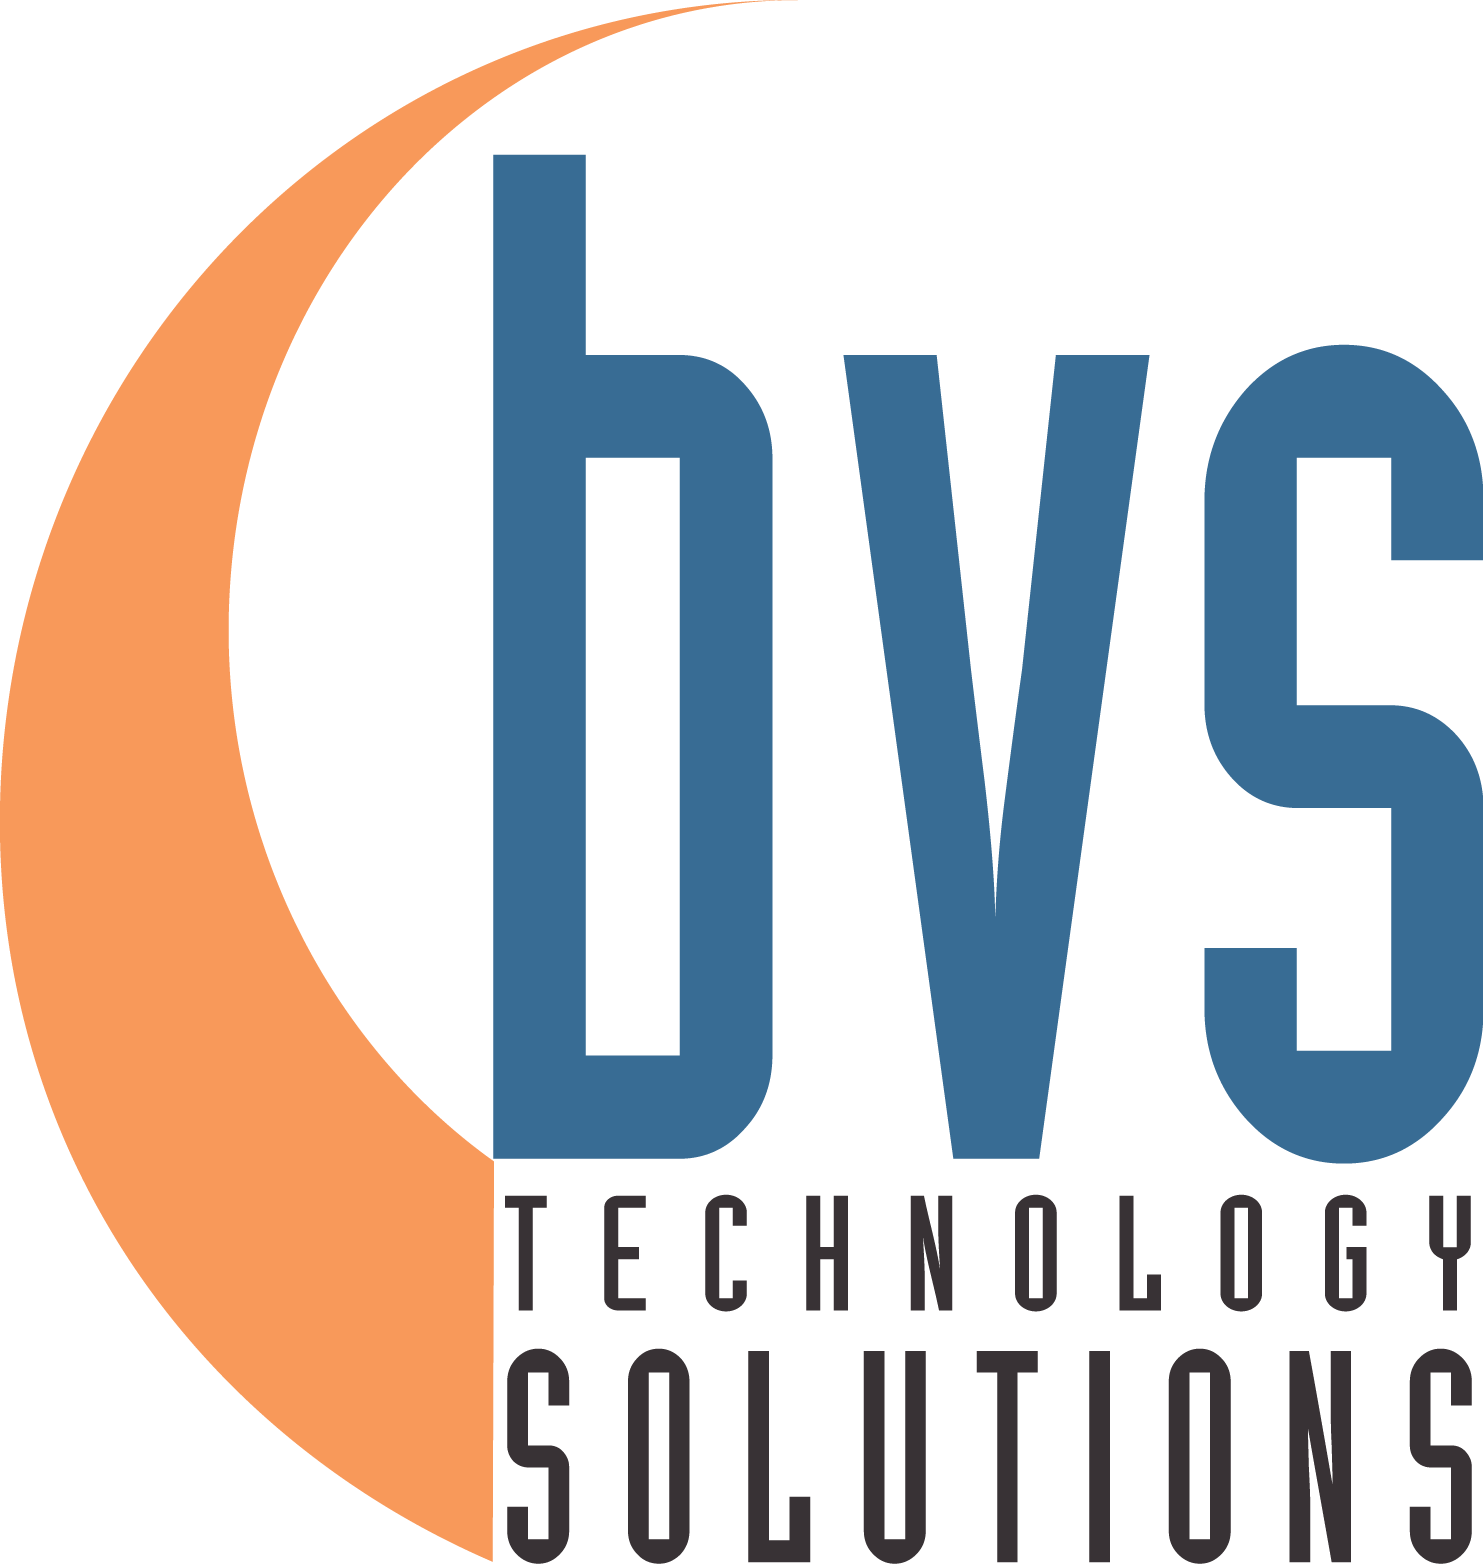 BVS Technology Solutions